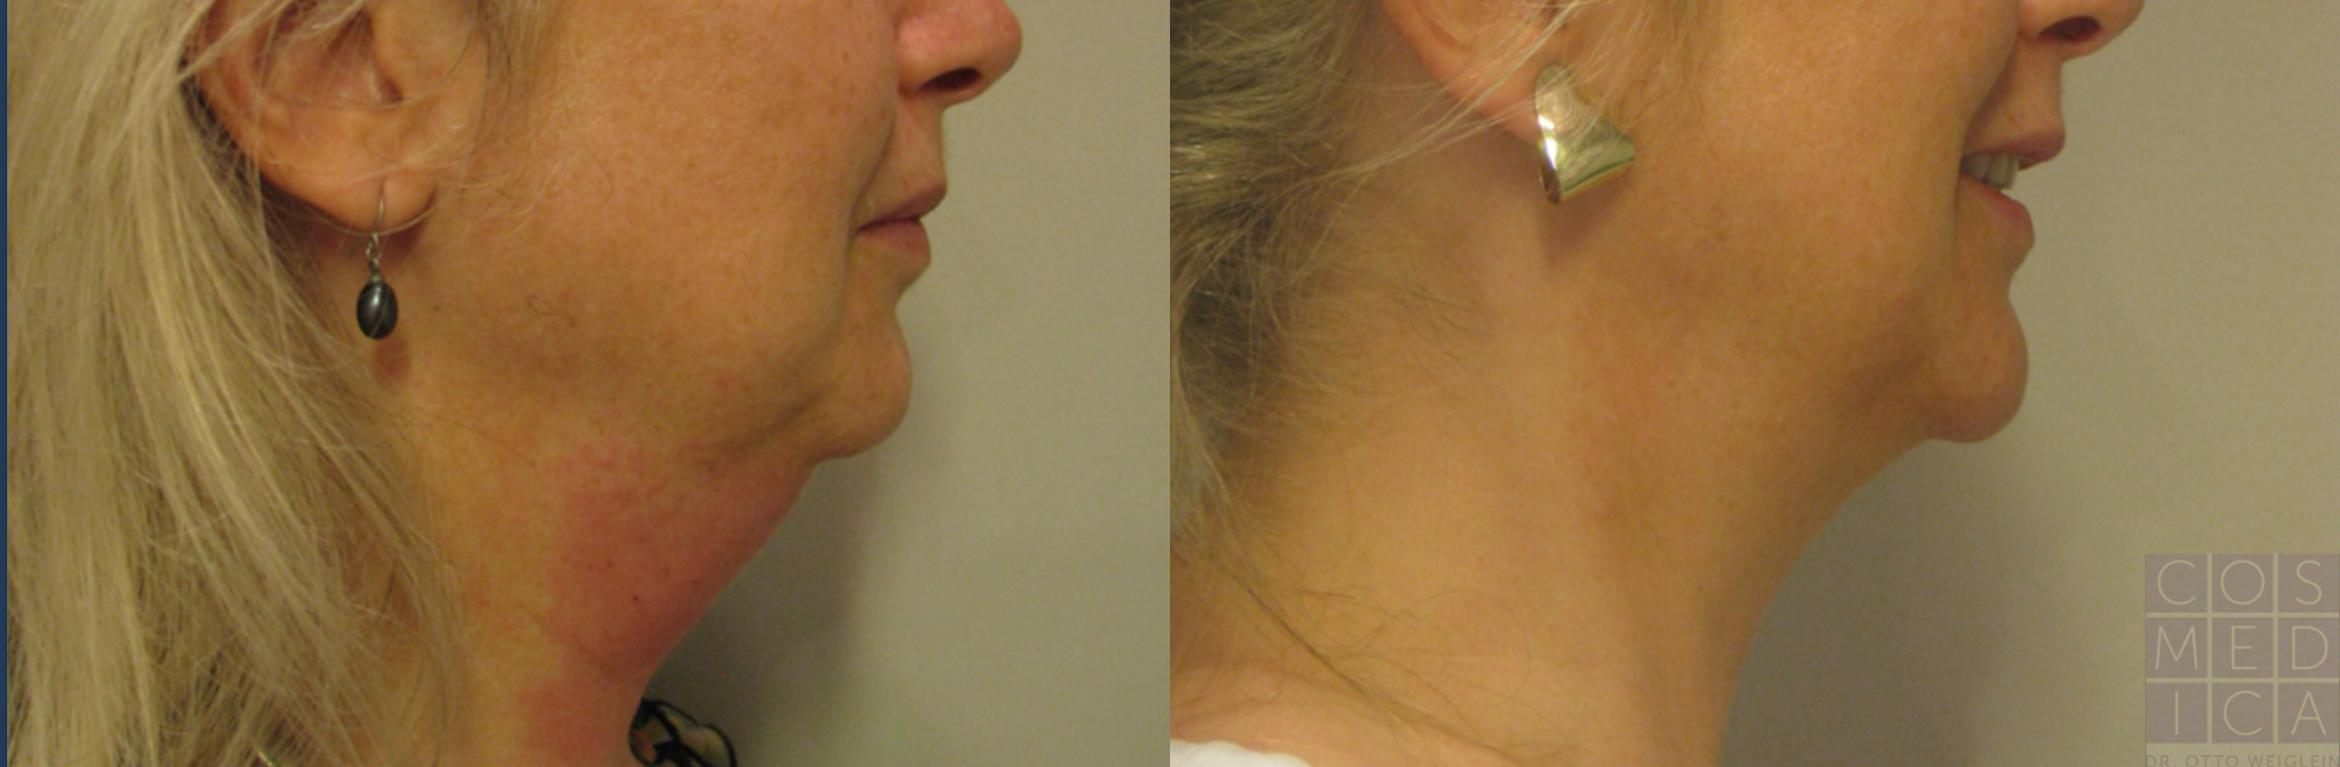 Belkyra® (Double Chin Treatment) Case 65 Before & After View #1 | Burlington & Oakville, Ontario | Cosmedica Professional Skin Care Centres